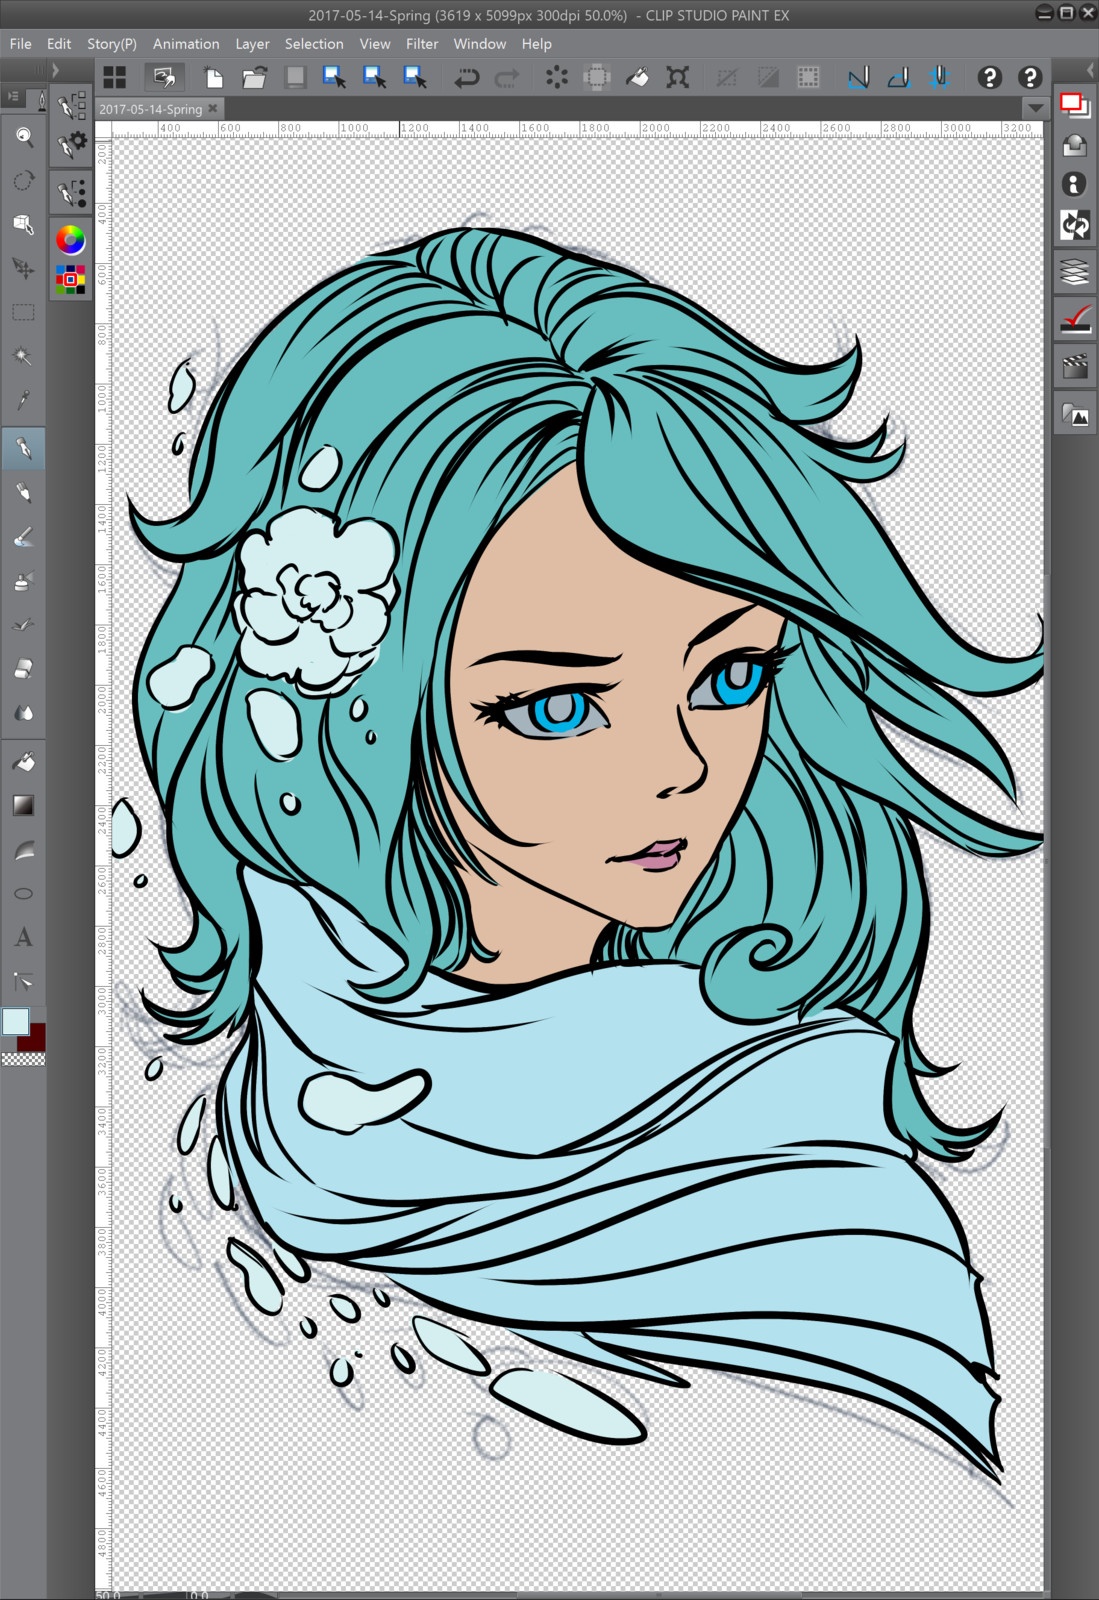 03 - Painting the base color flat tones